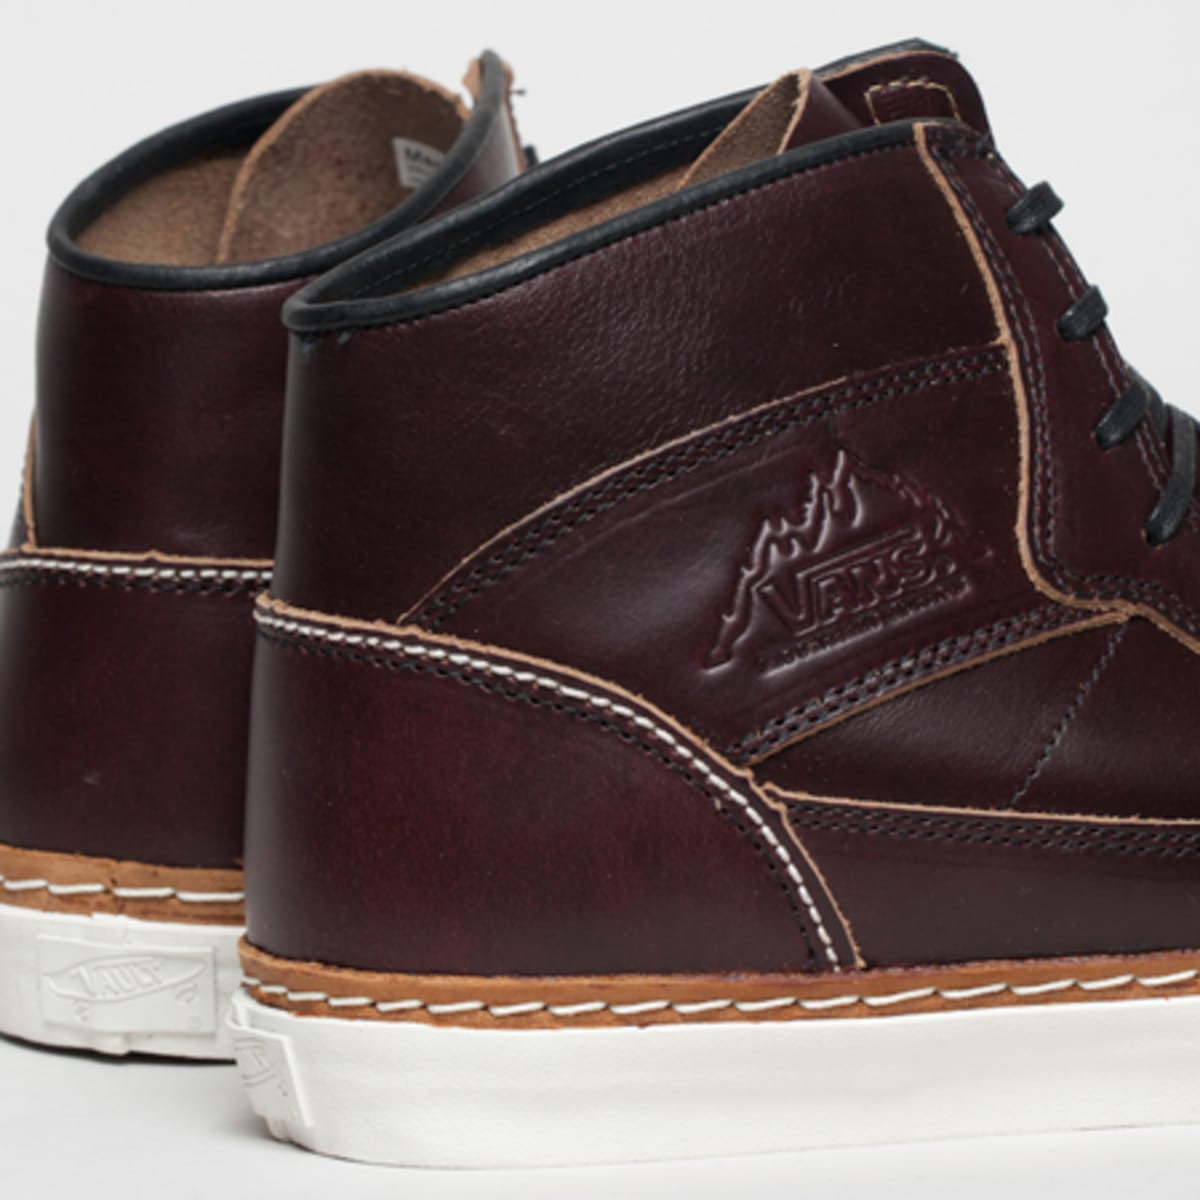 horween leather x vans vault mt edition decon lx era hw lx available now freshness mag horween leather x vans vault mt